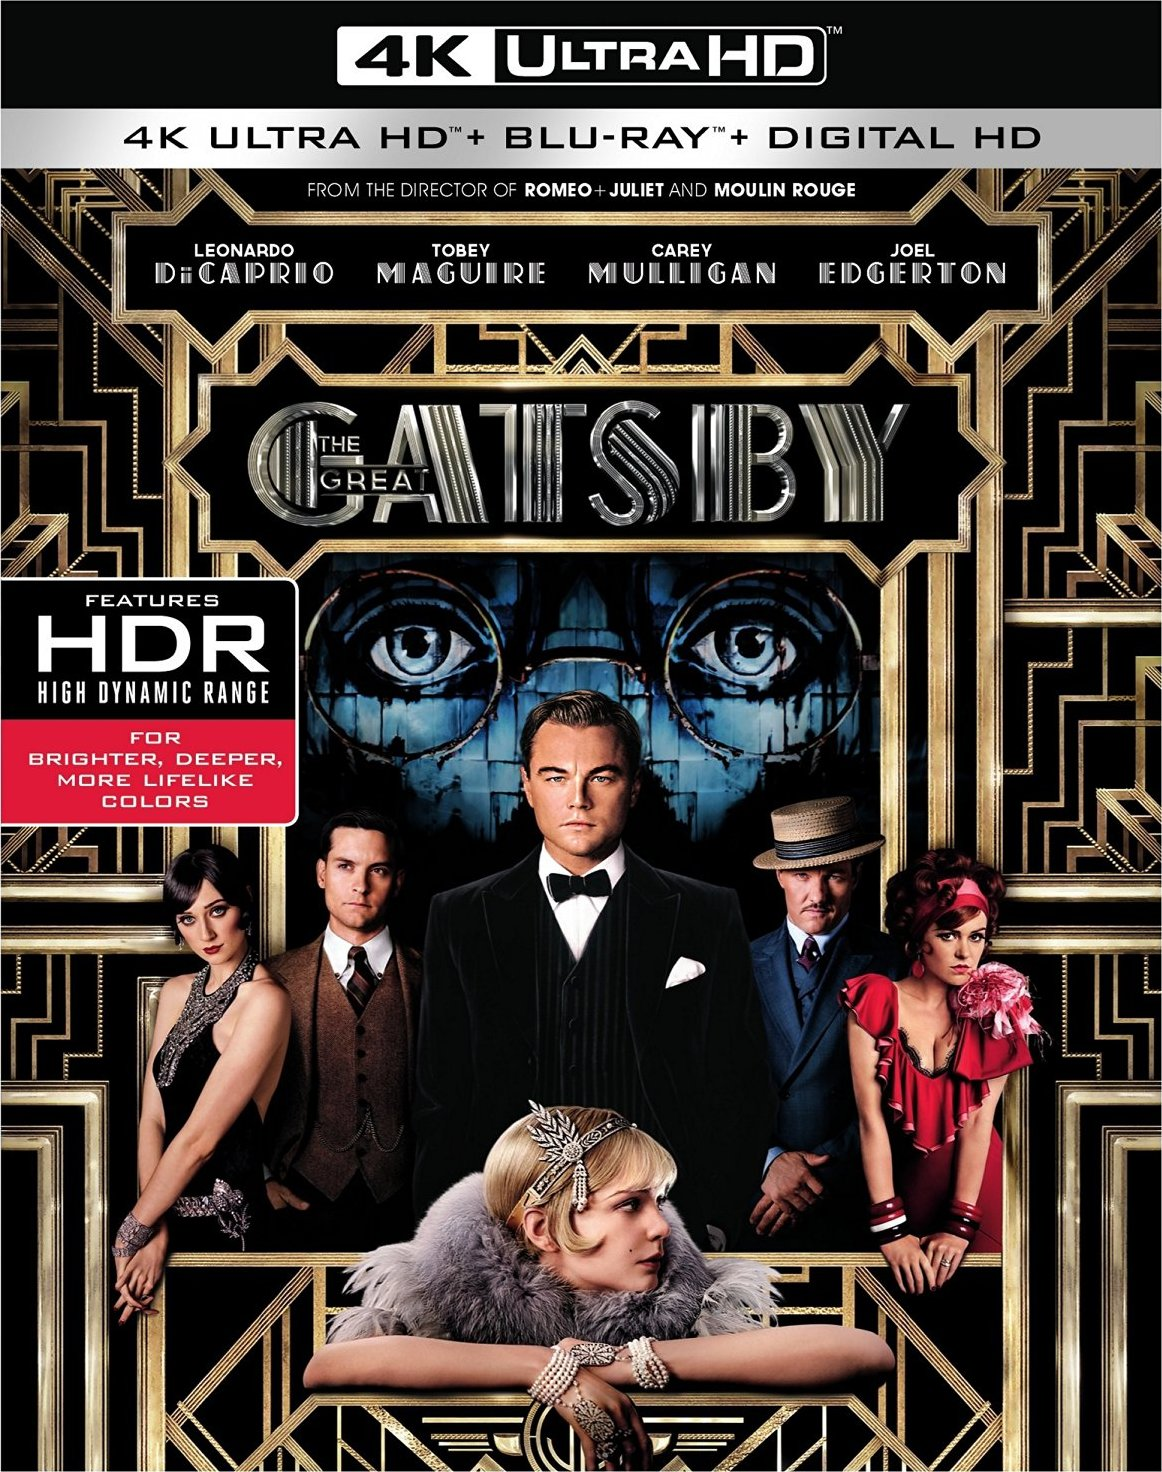 The Great Gatsby (2013) 4K Ultra HD Blu-ray